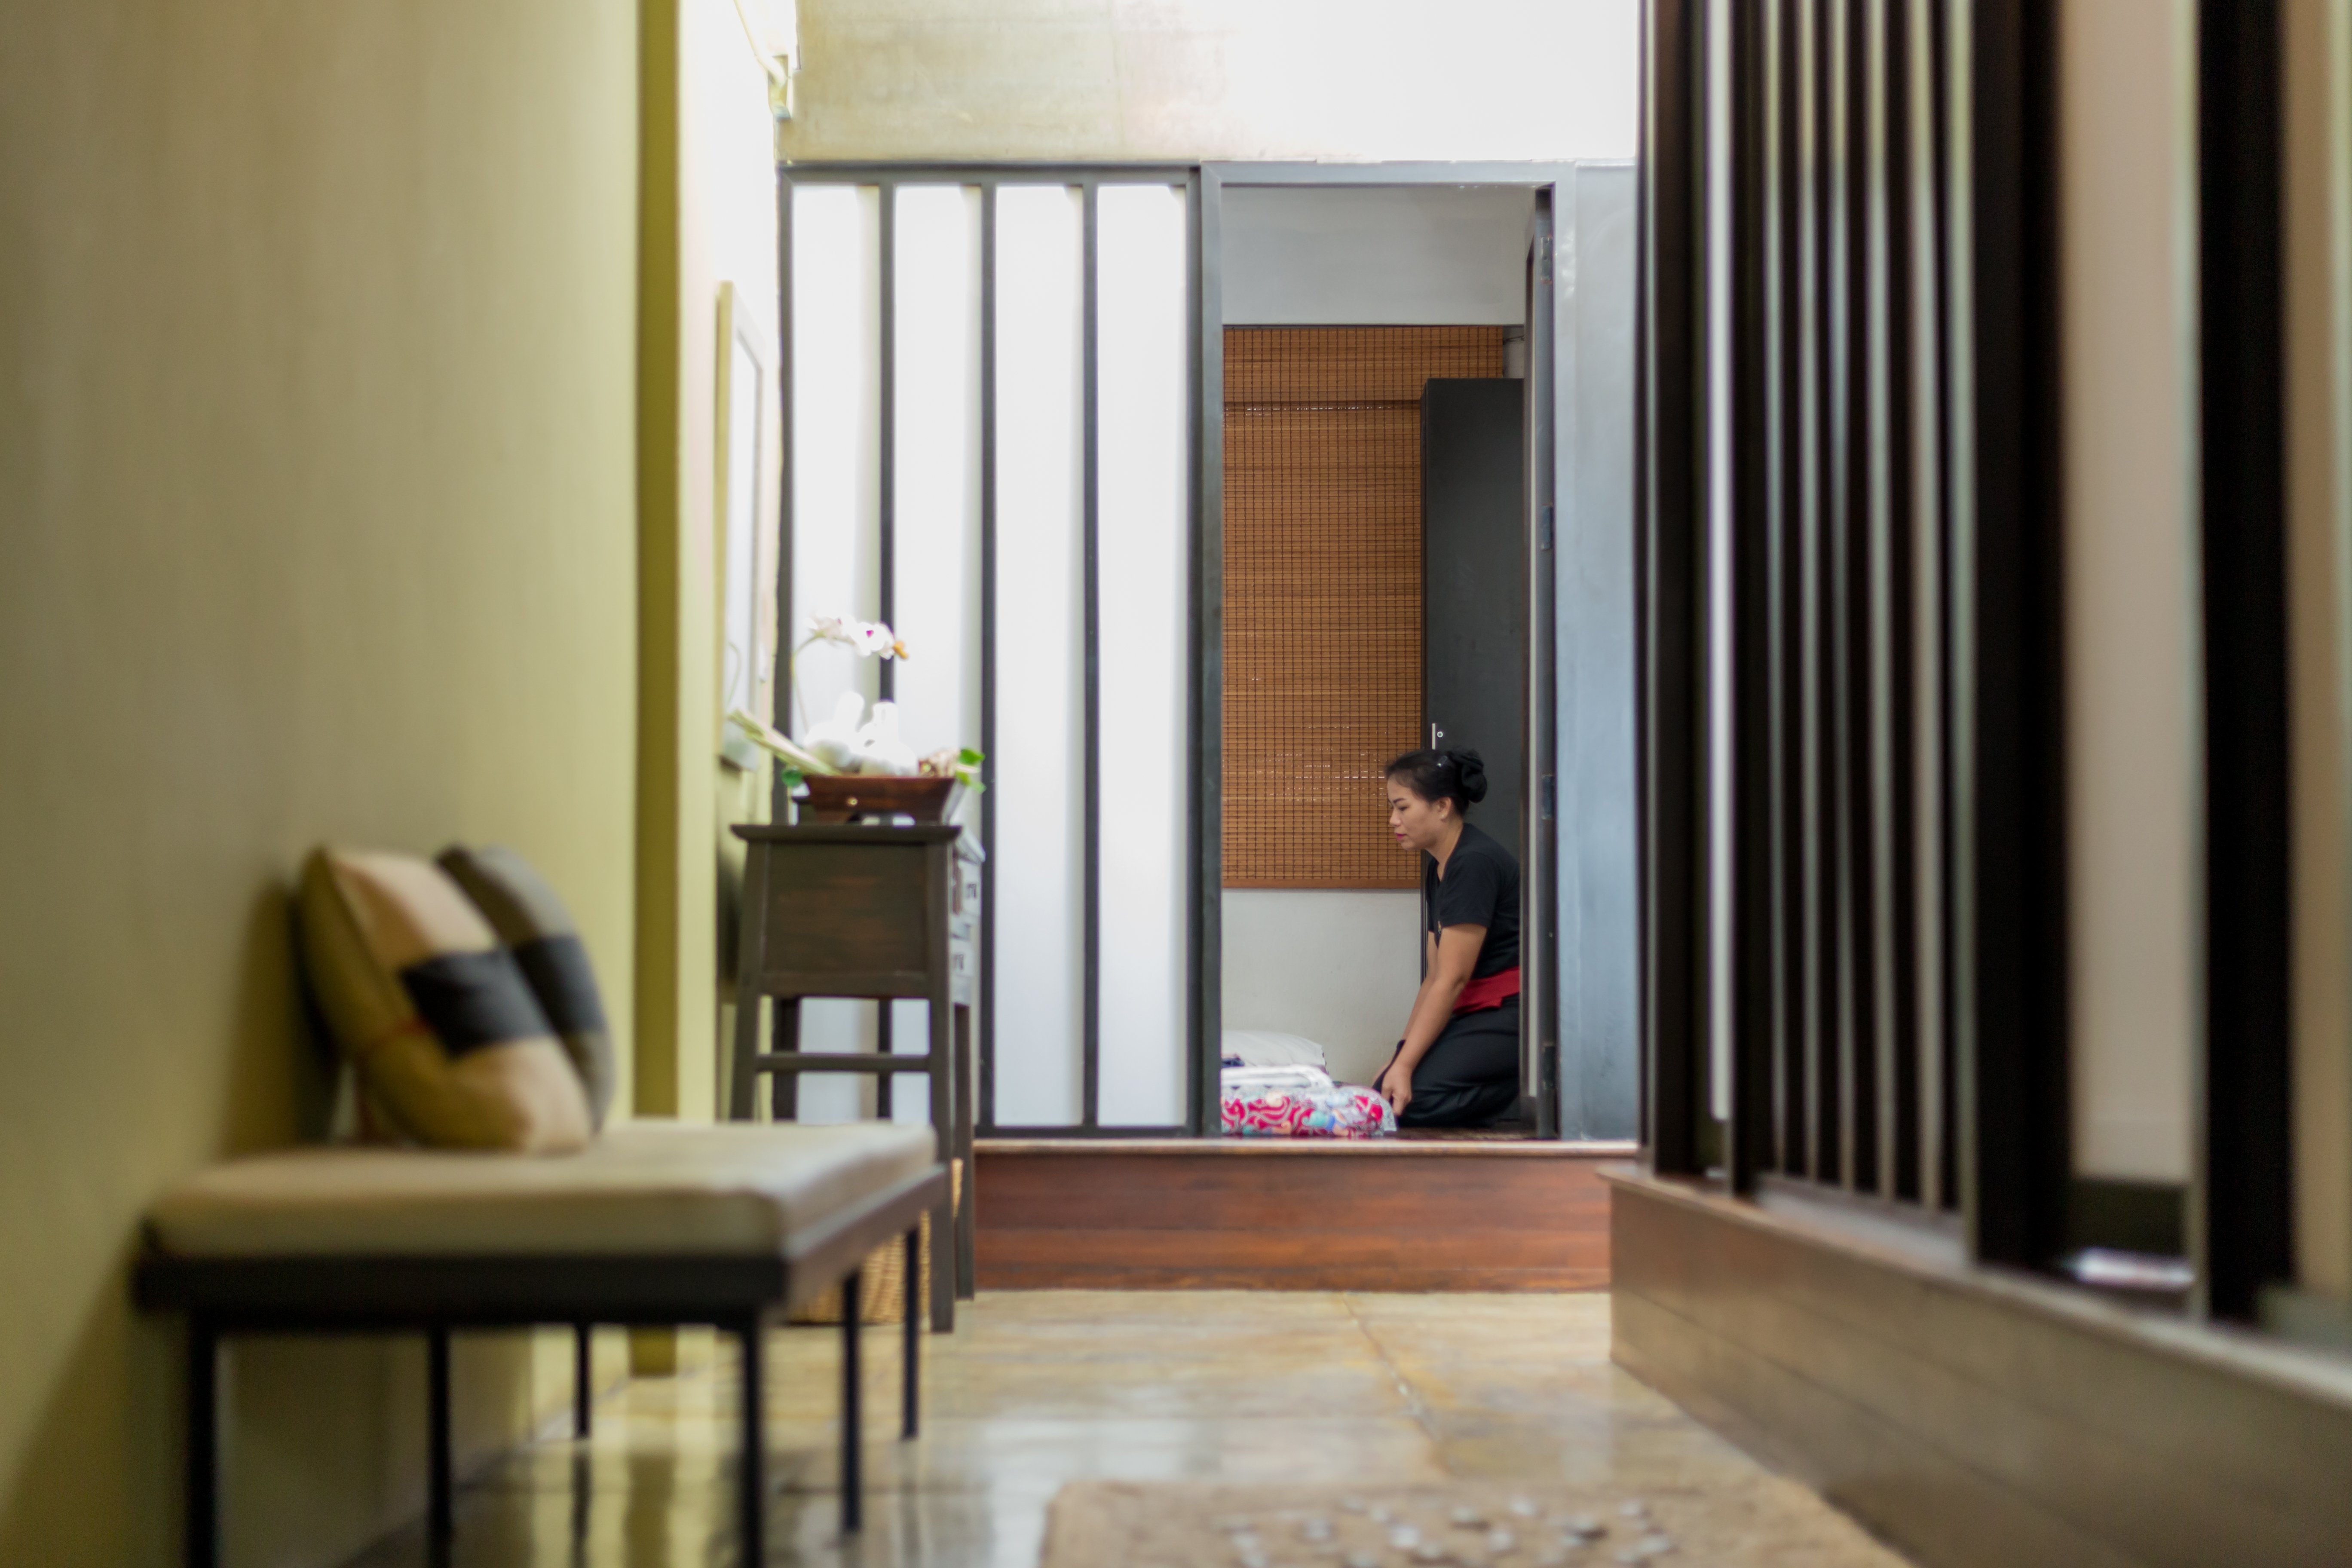 Peaceful Massage and Spa Ambience